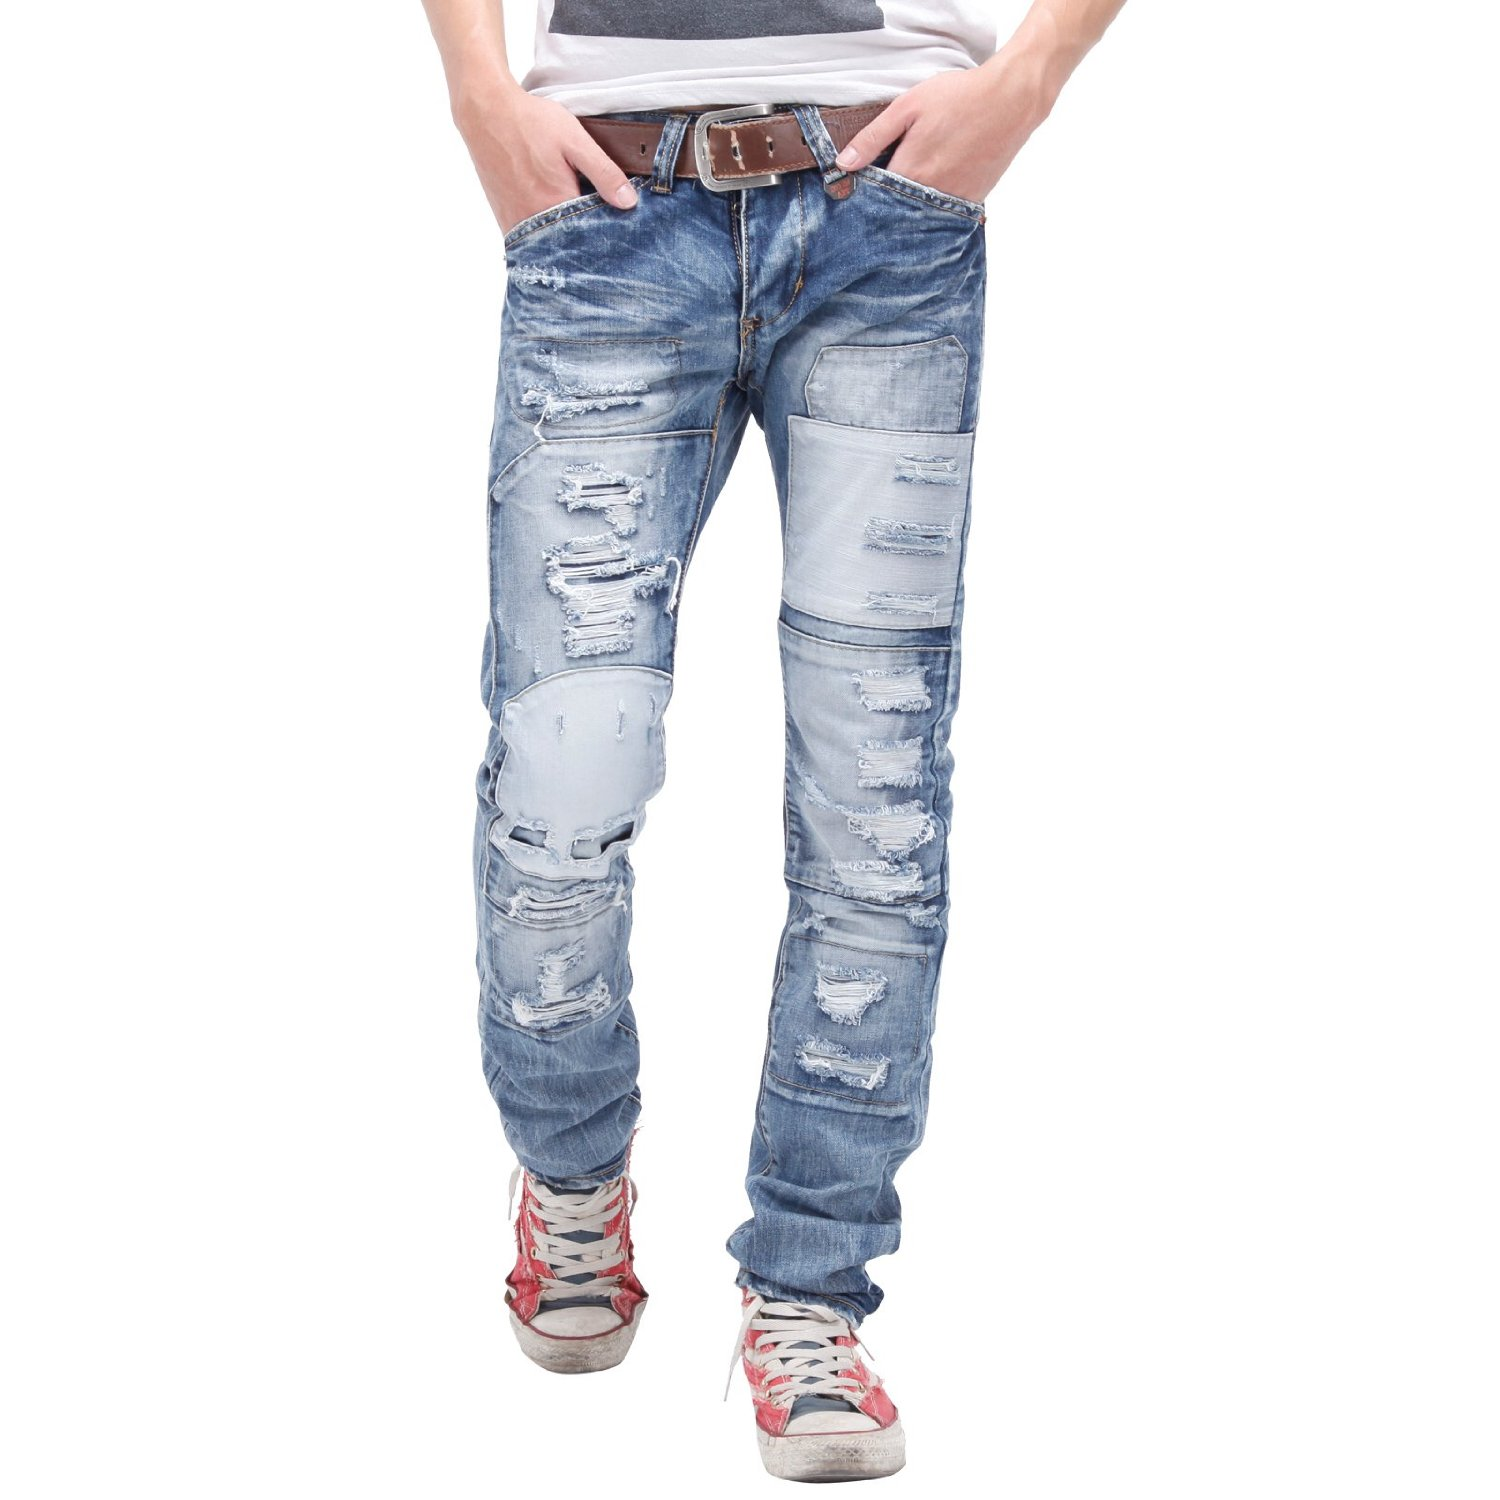 ripped-jeans-for-men